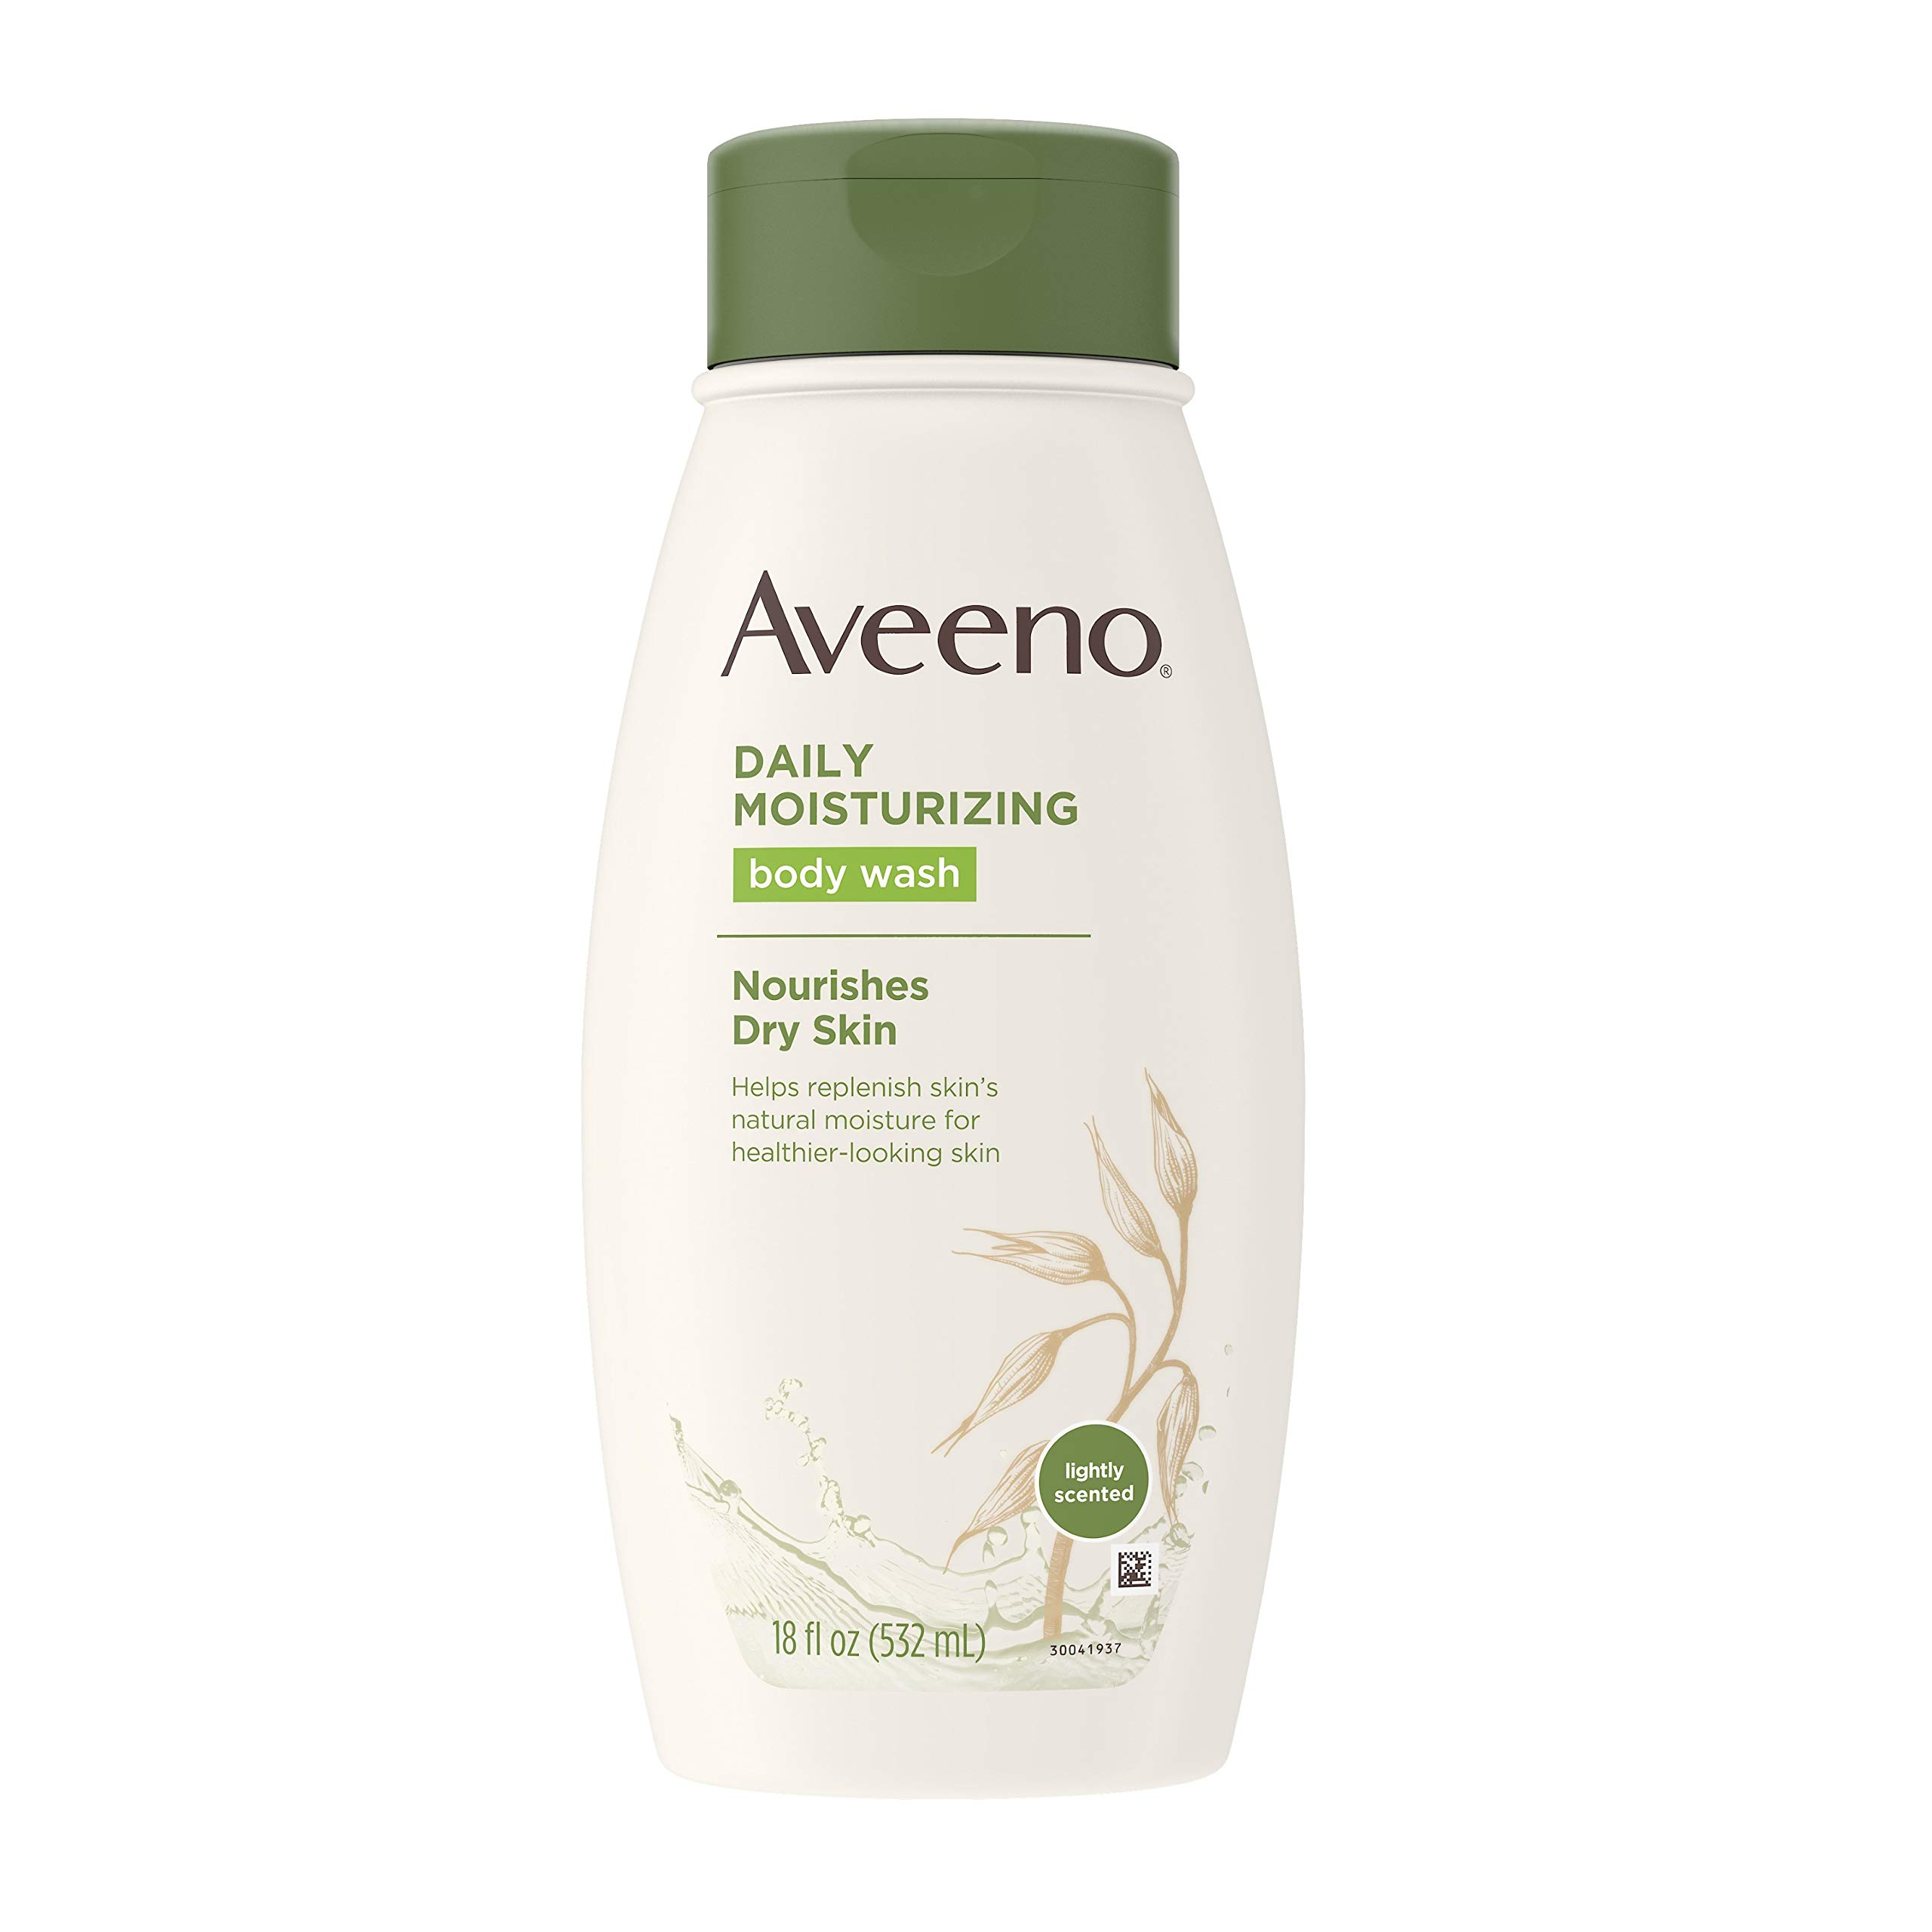 Aveeno Daily Moisturizing Body Wash for Dry Skin with Soothing Oat & Rich Emollients, Creamy Shower Cleanser, Gentle, Soap-Free and Dye-Free, Light Fragrance, 18 Fl Ounce